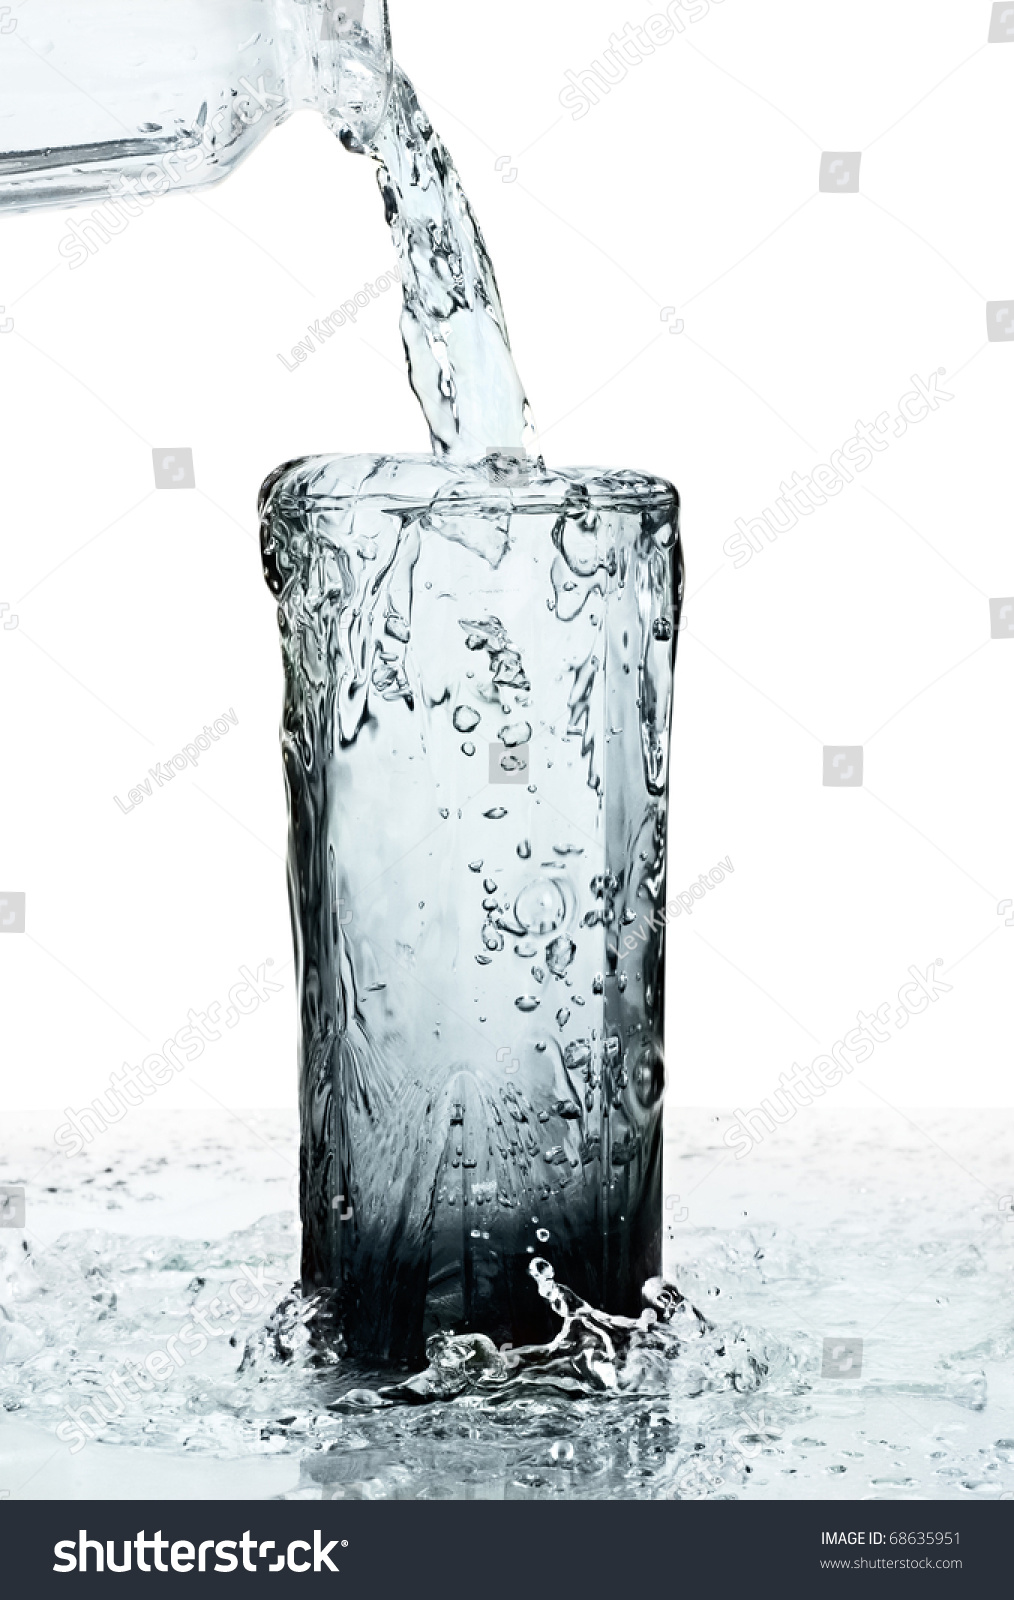 Background image overflow - Glass Of A Water With Overflow Isolated On White Background